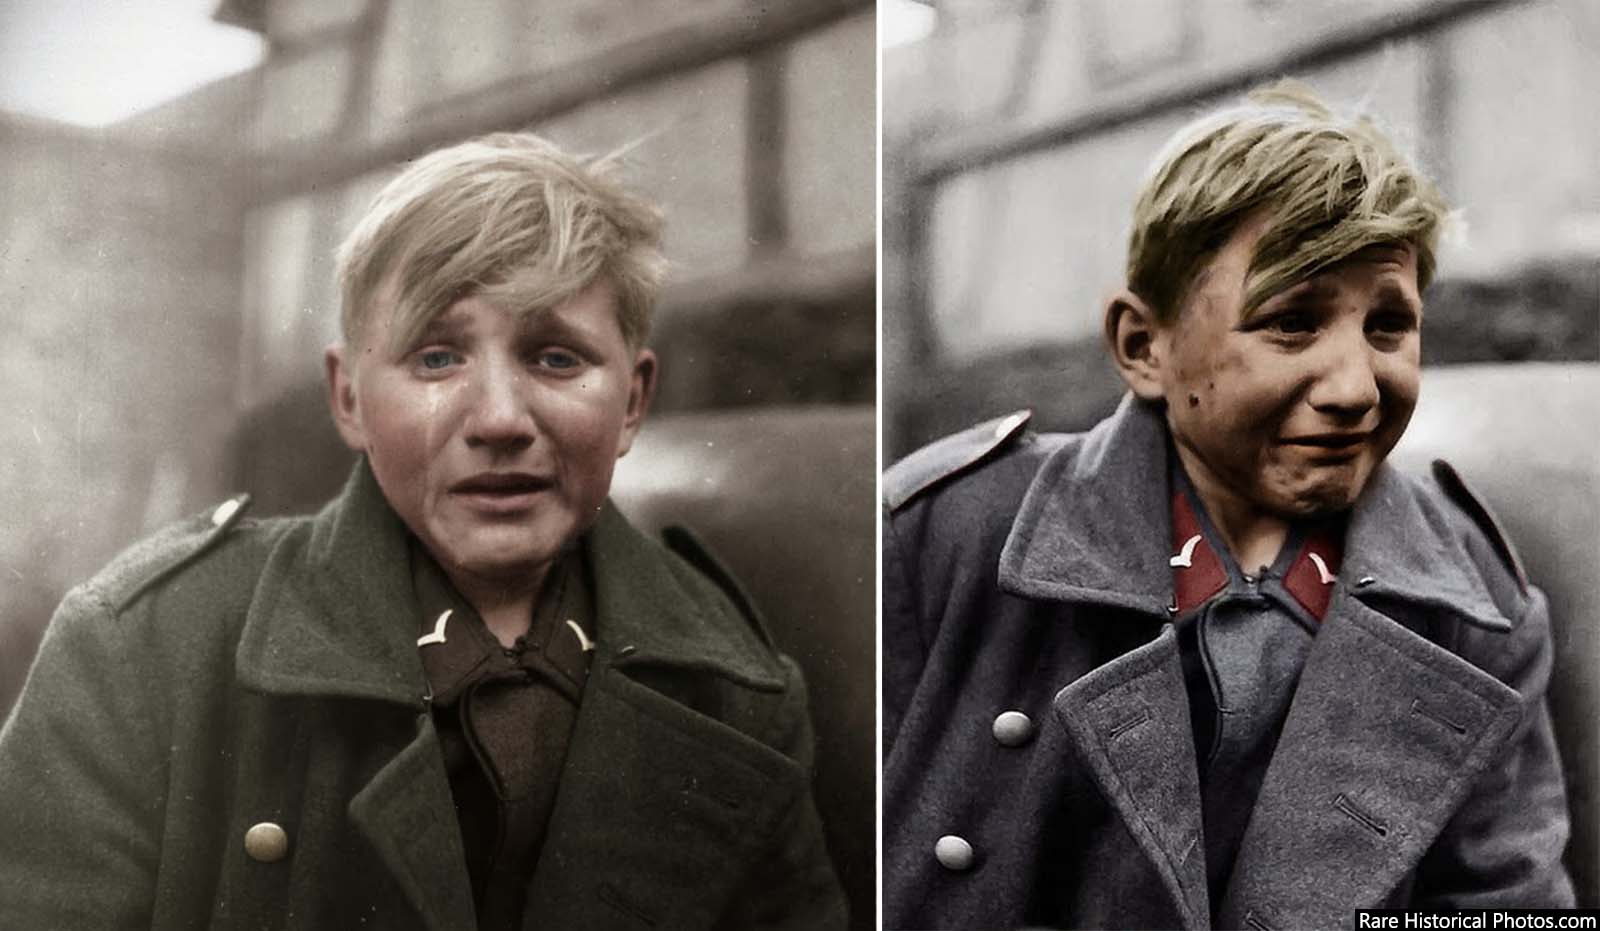 Colorized versions (from two different artists).